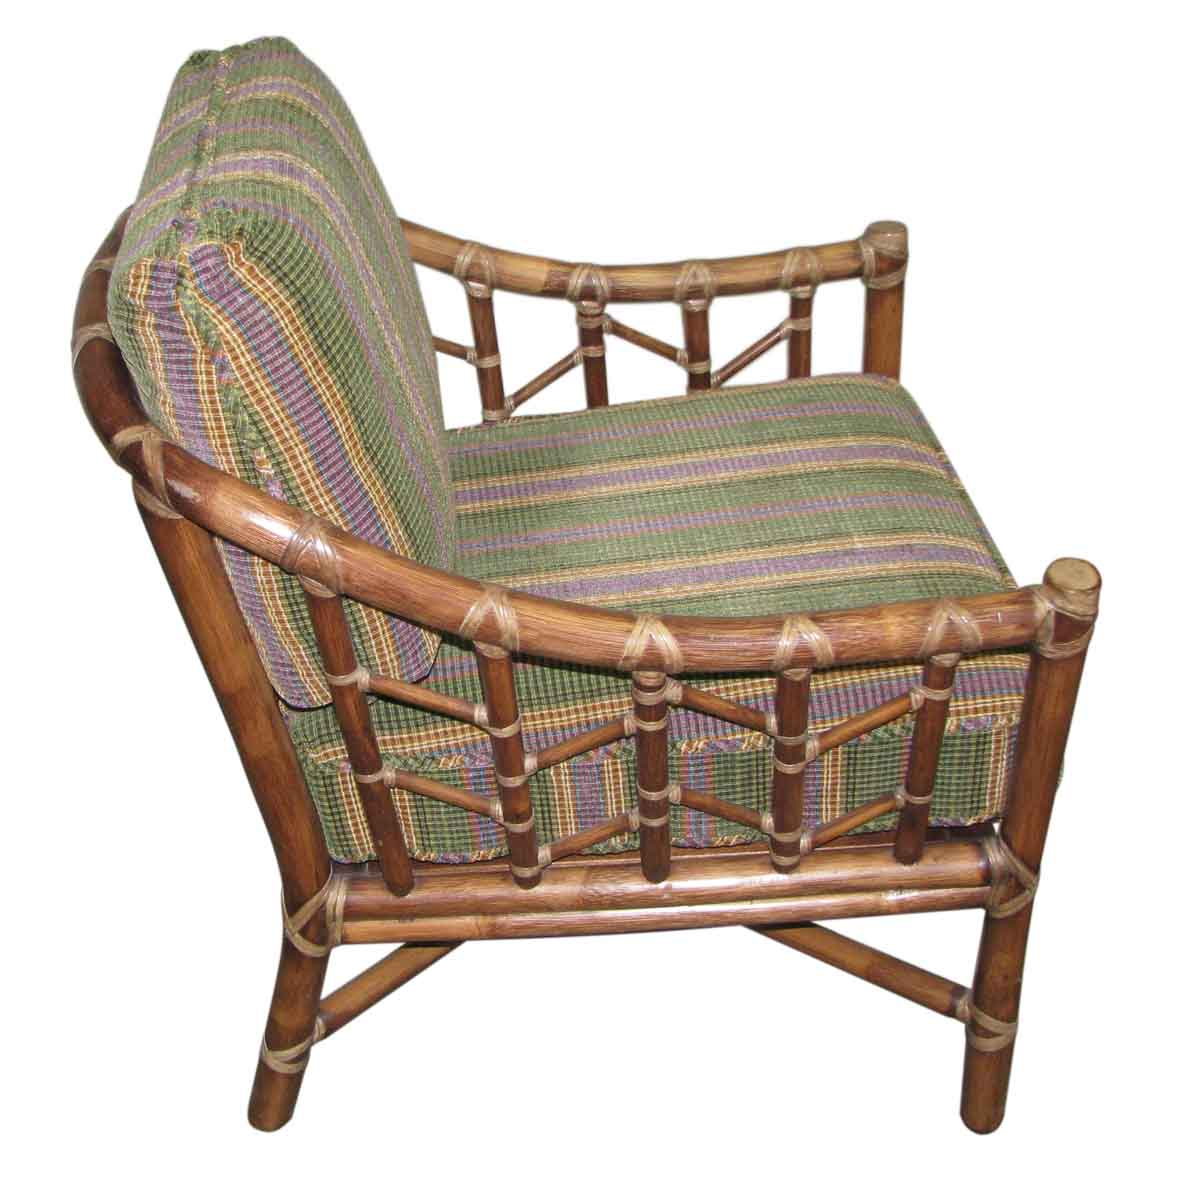 Bamboo Furniture Store: Bamboo Patio Chair